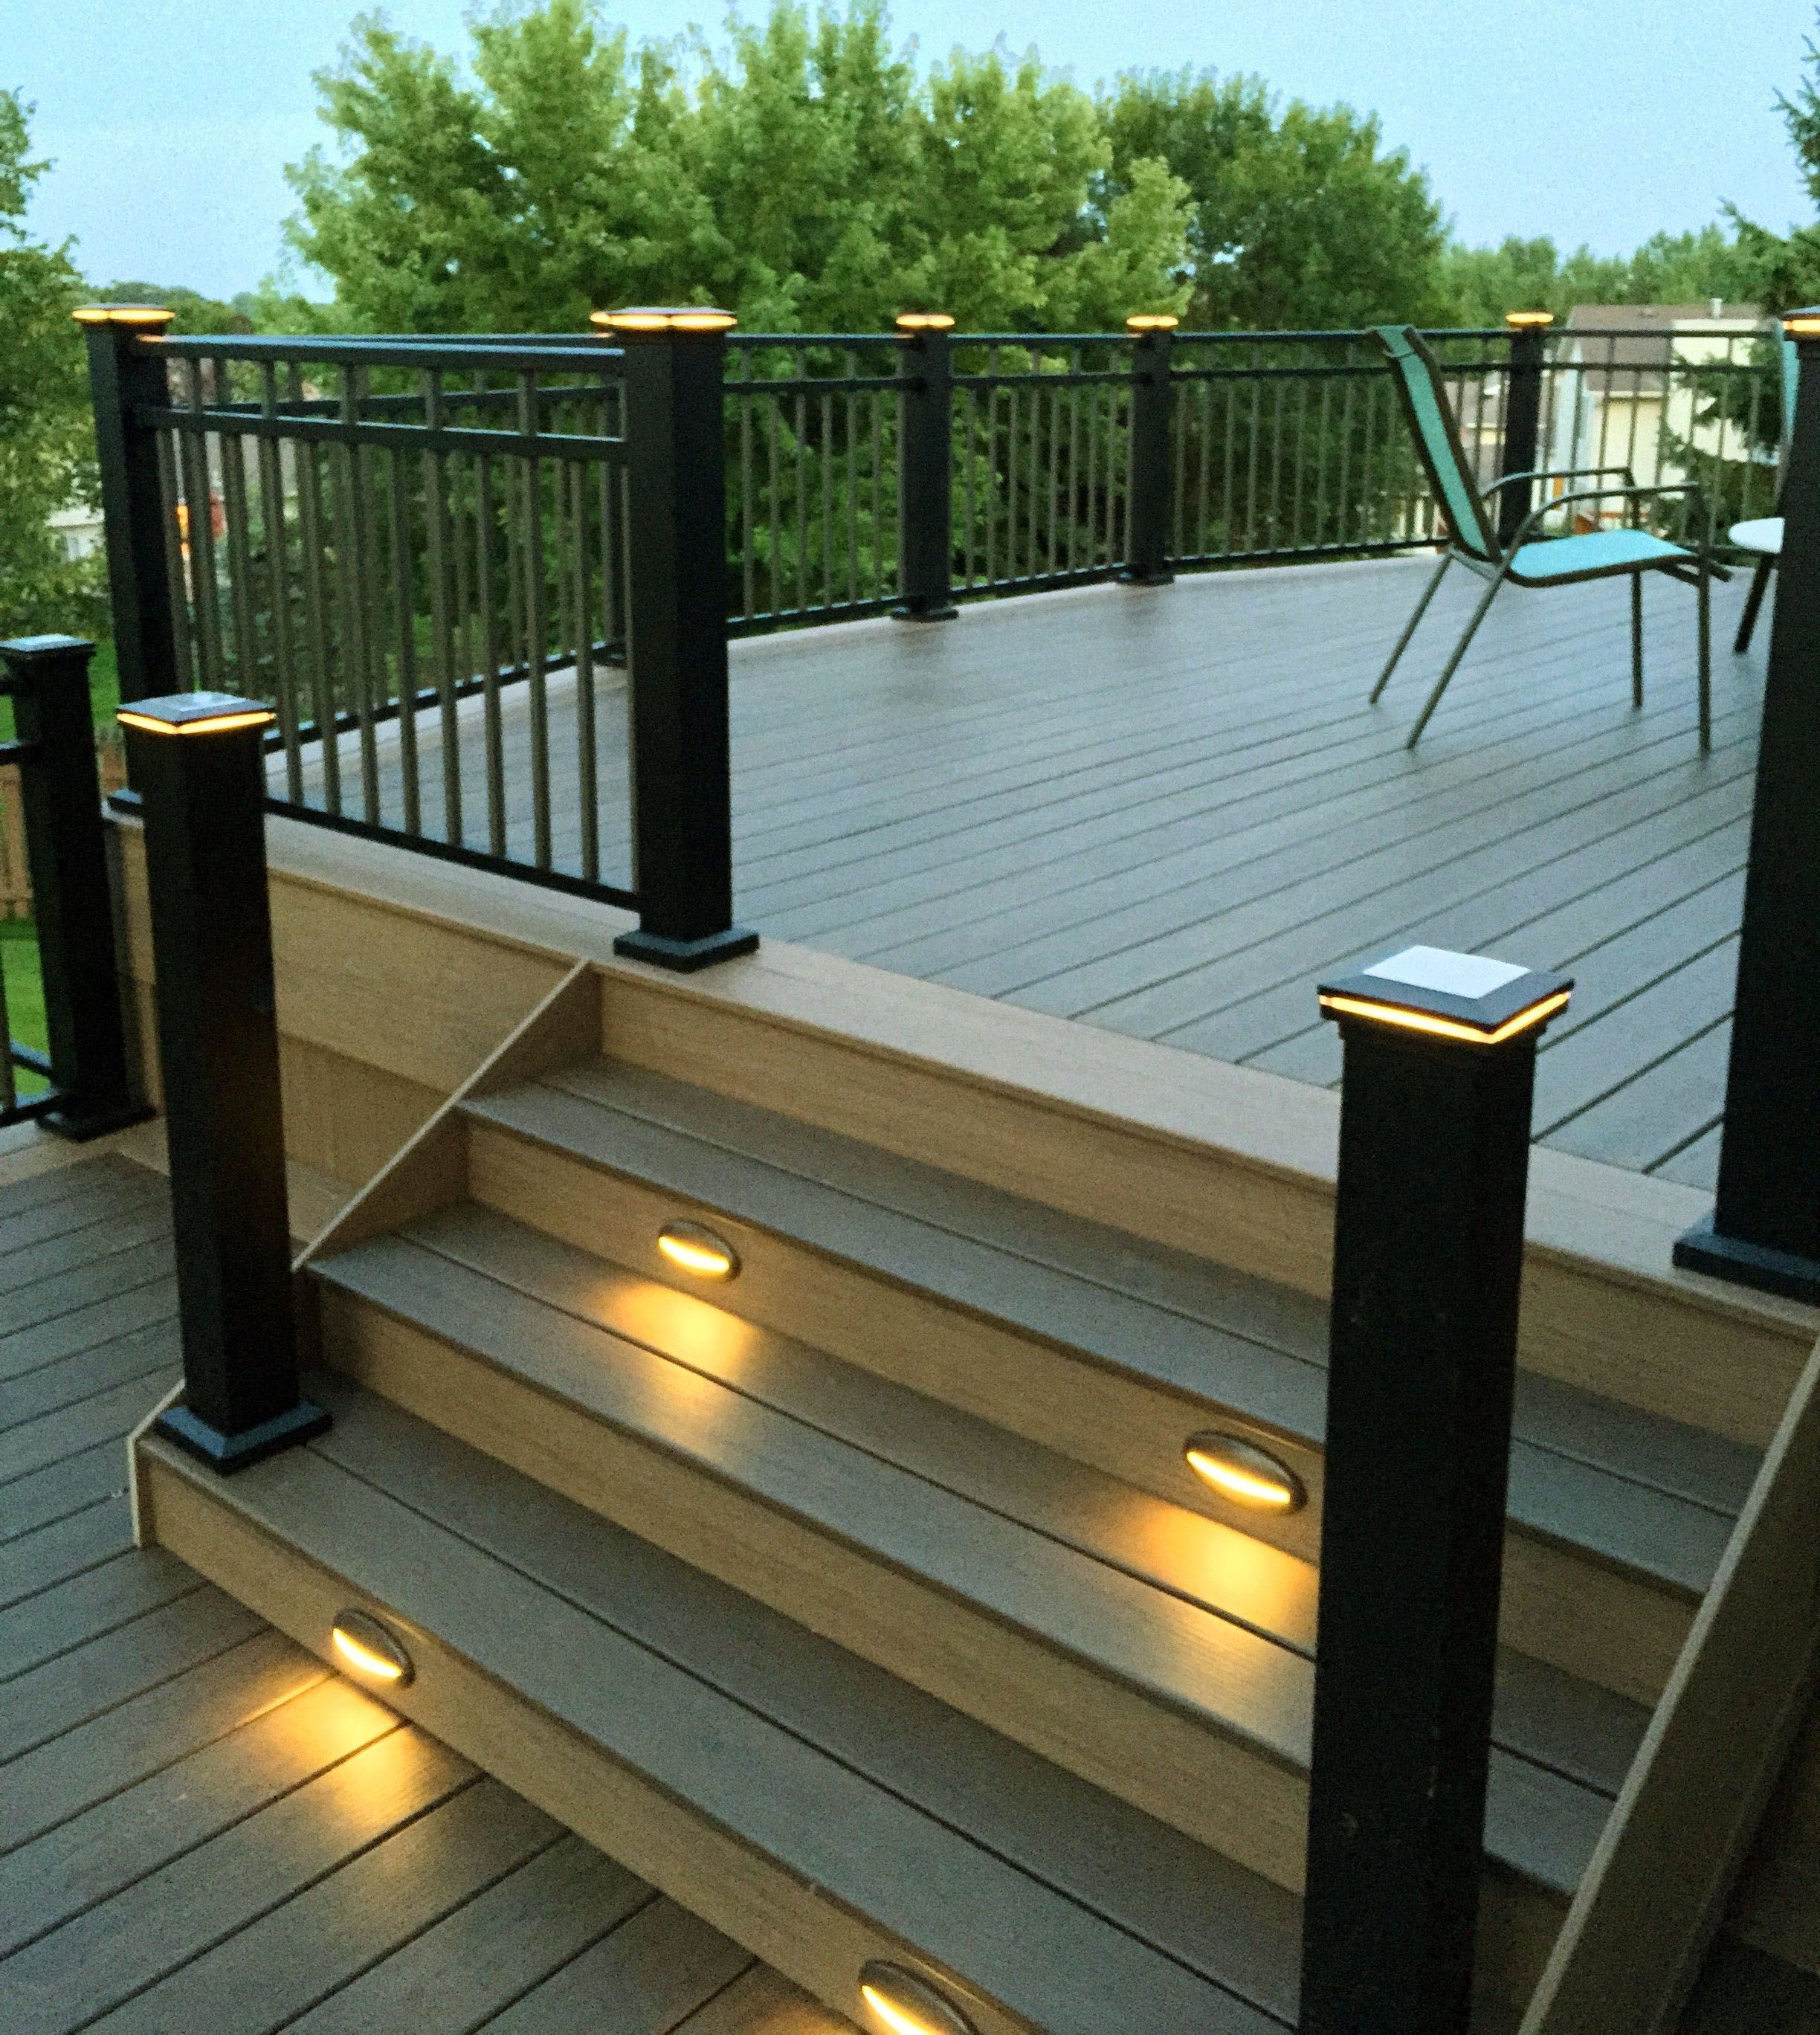 Crazy Deck Lighting Ideas Canada Only In Miral Iva Design Ome Improvement Center Or Find An Online Sol In 2020 Deck Stair Lights Deck Lighting Outdoor Deck Lighting